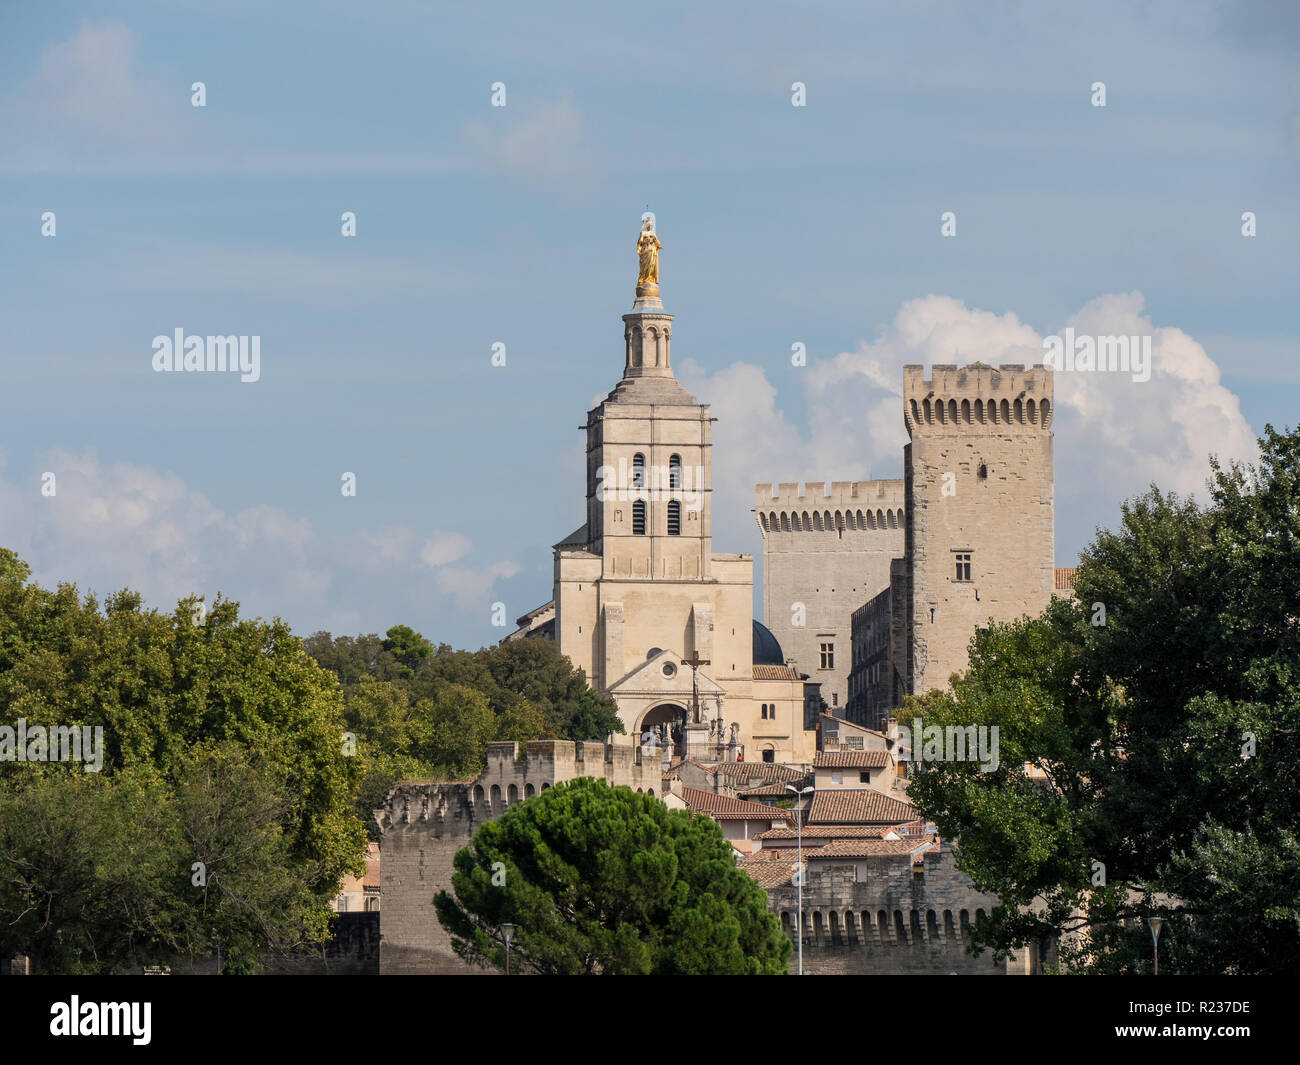 The Papal palace, an historical palace located in Avignon, southern France. It is one of the largest and most important medieval Gothic buildings in E Stock Photo